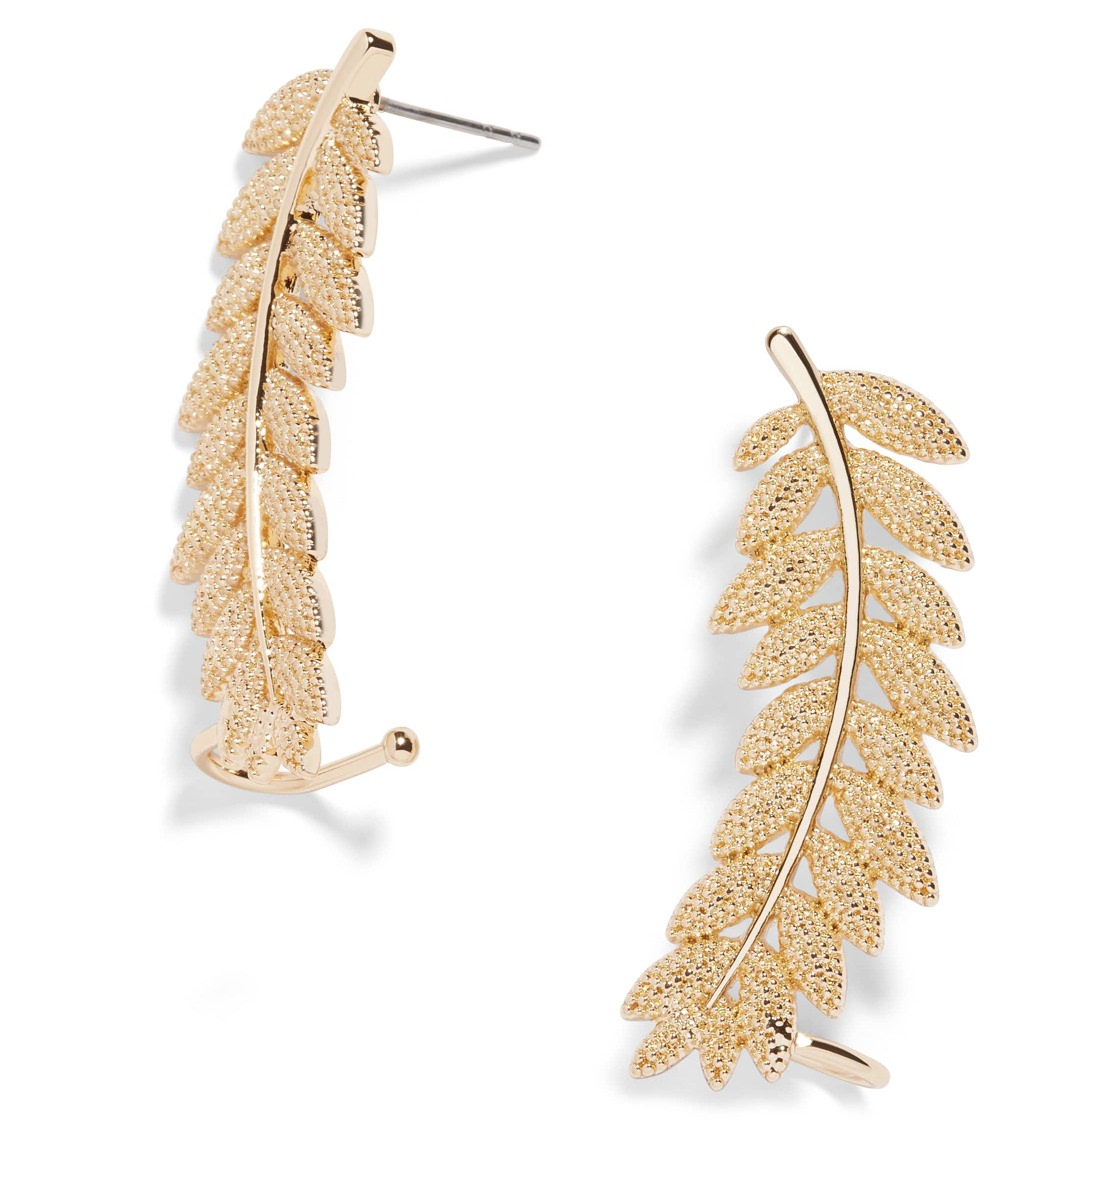 Baublebar Irs Ear Crawlers